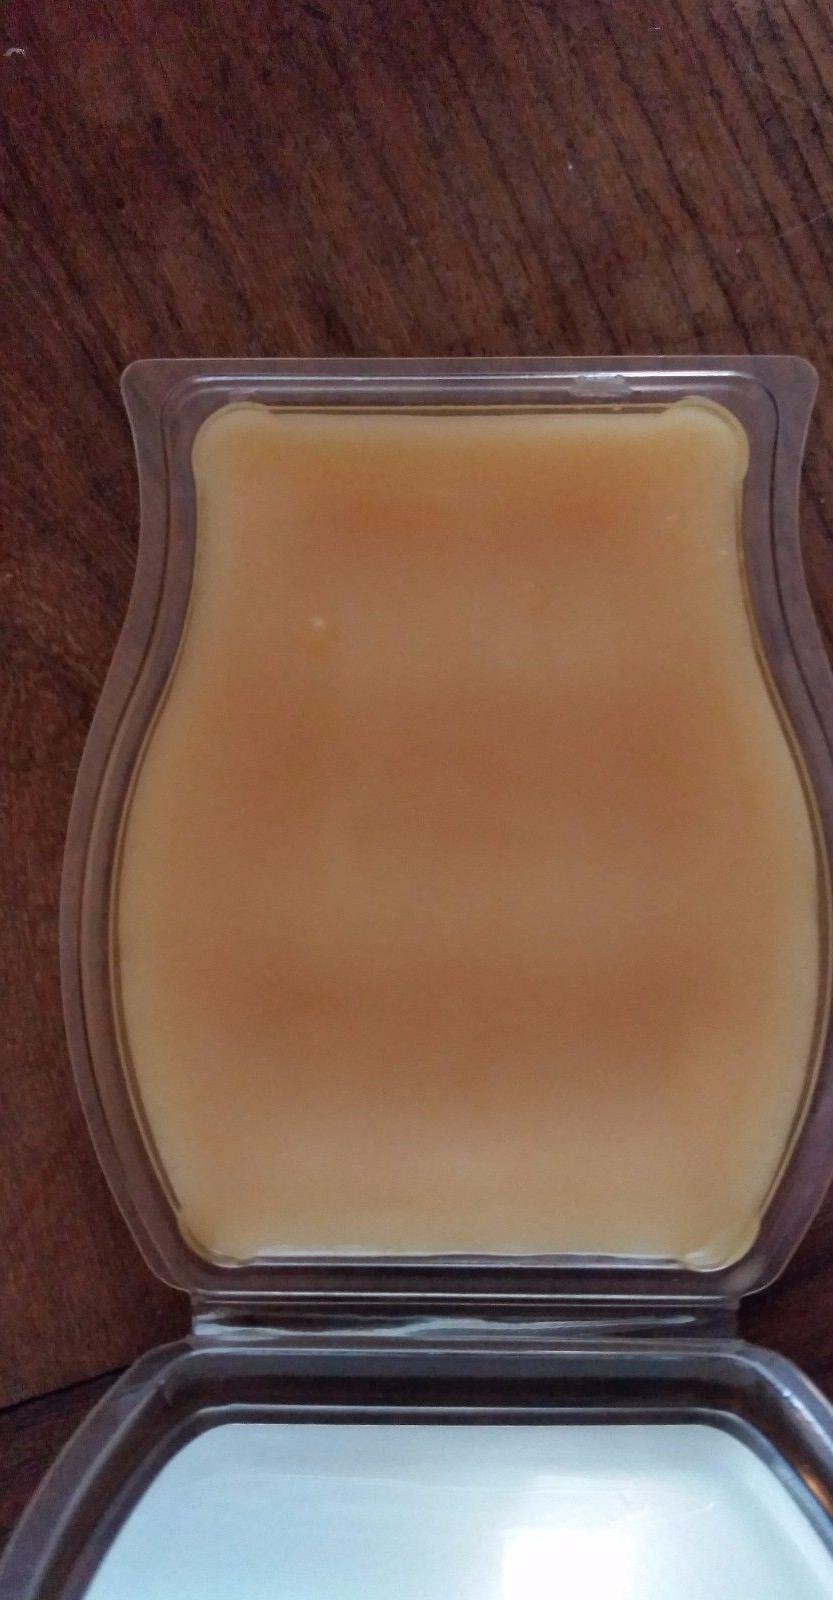 SCENTSY Cookie Bar ROUTE 66 NEW